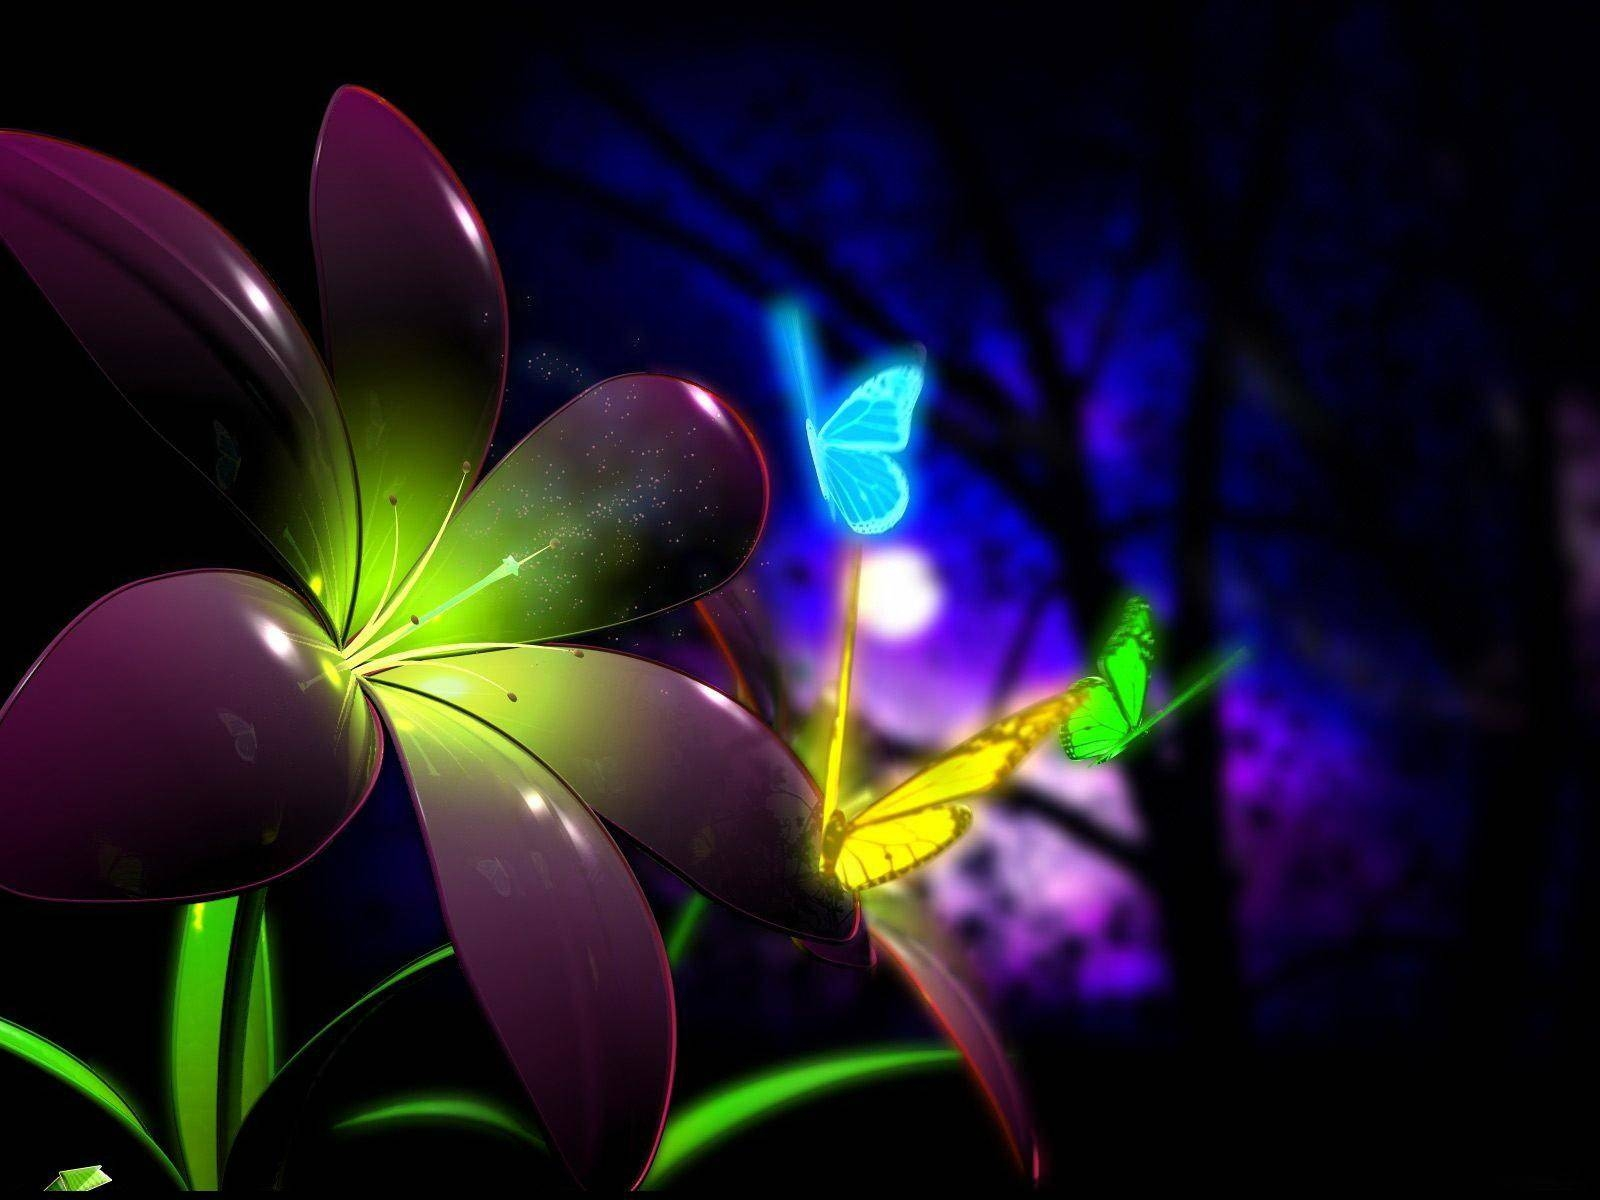 3d_wallpaper_mobile_android_devices_wallpapers